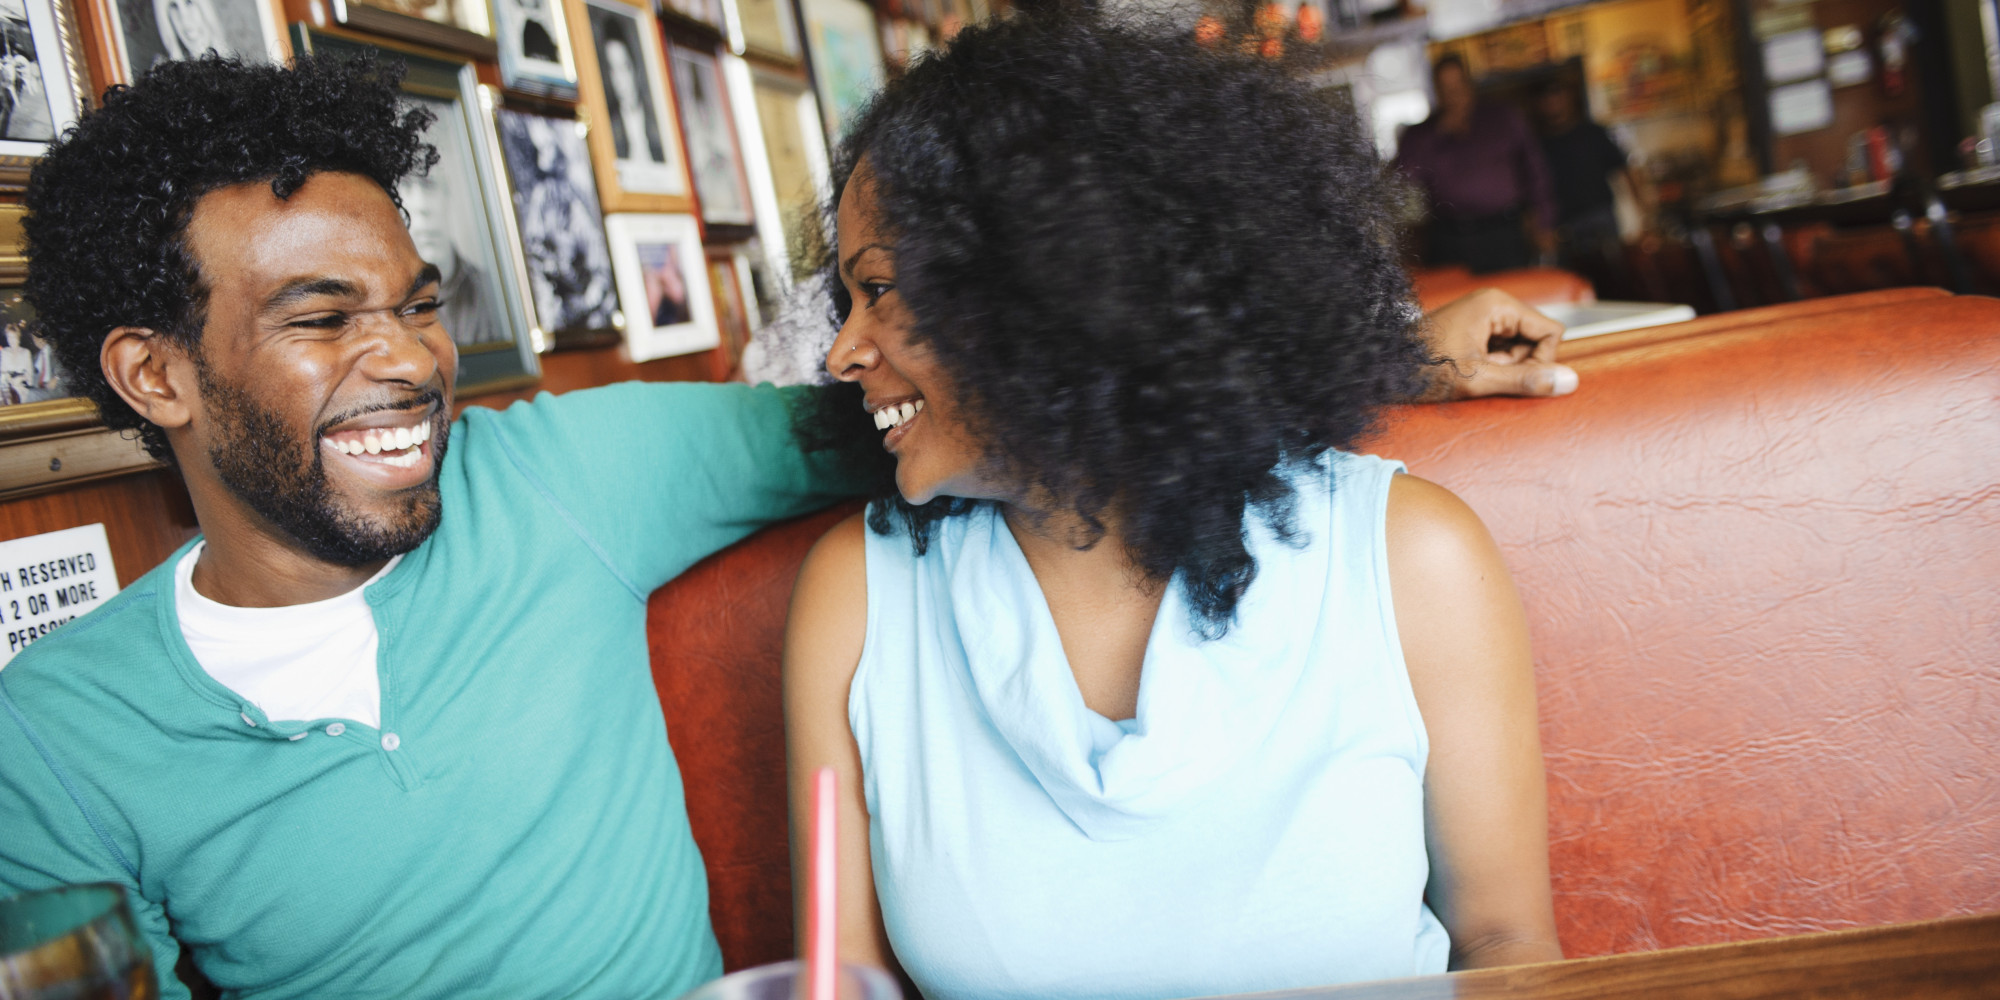 alderson black girls personals Black singles know blackpeoplemeetcom is the premier online destination for african american dating to meet black men or black women in your area, sign up today free.